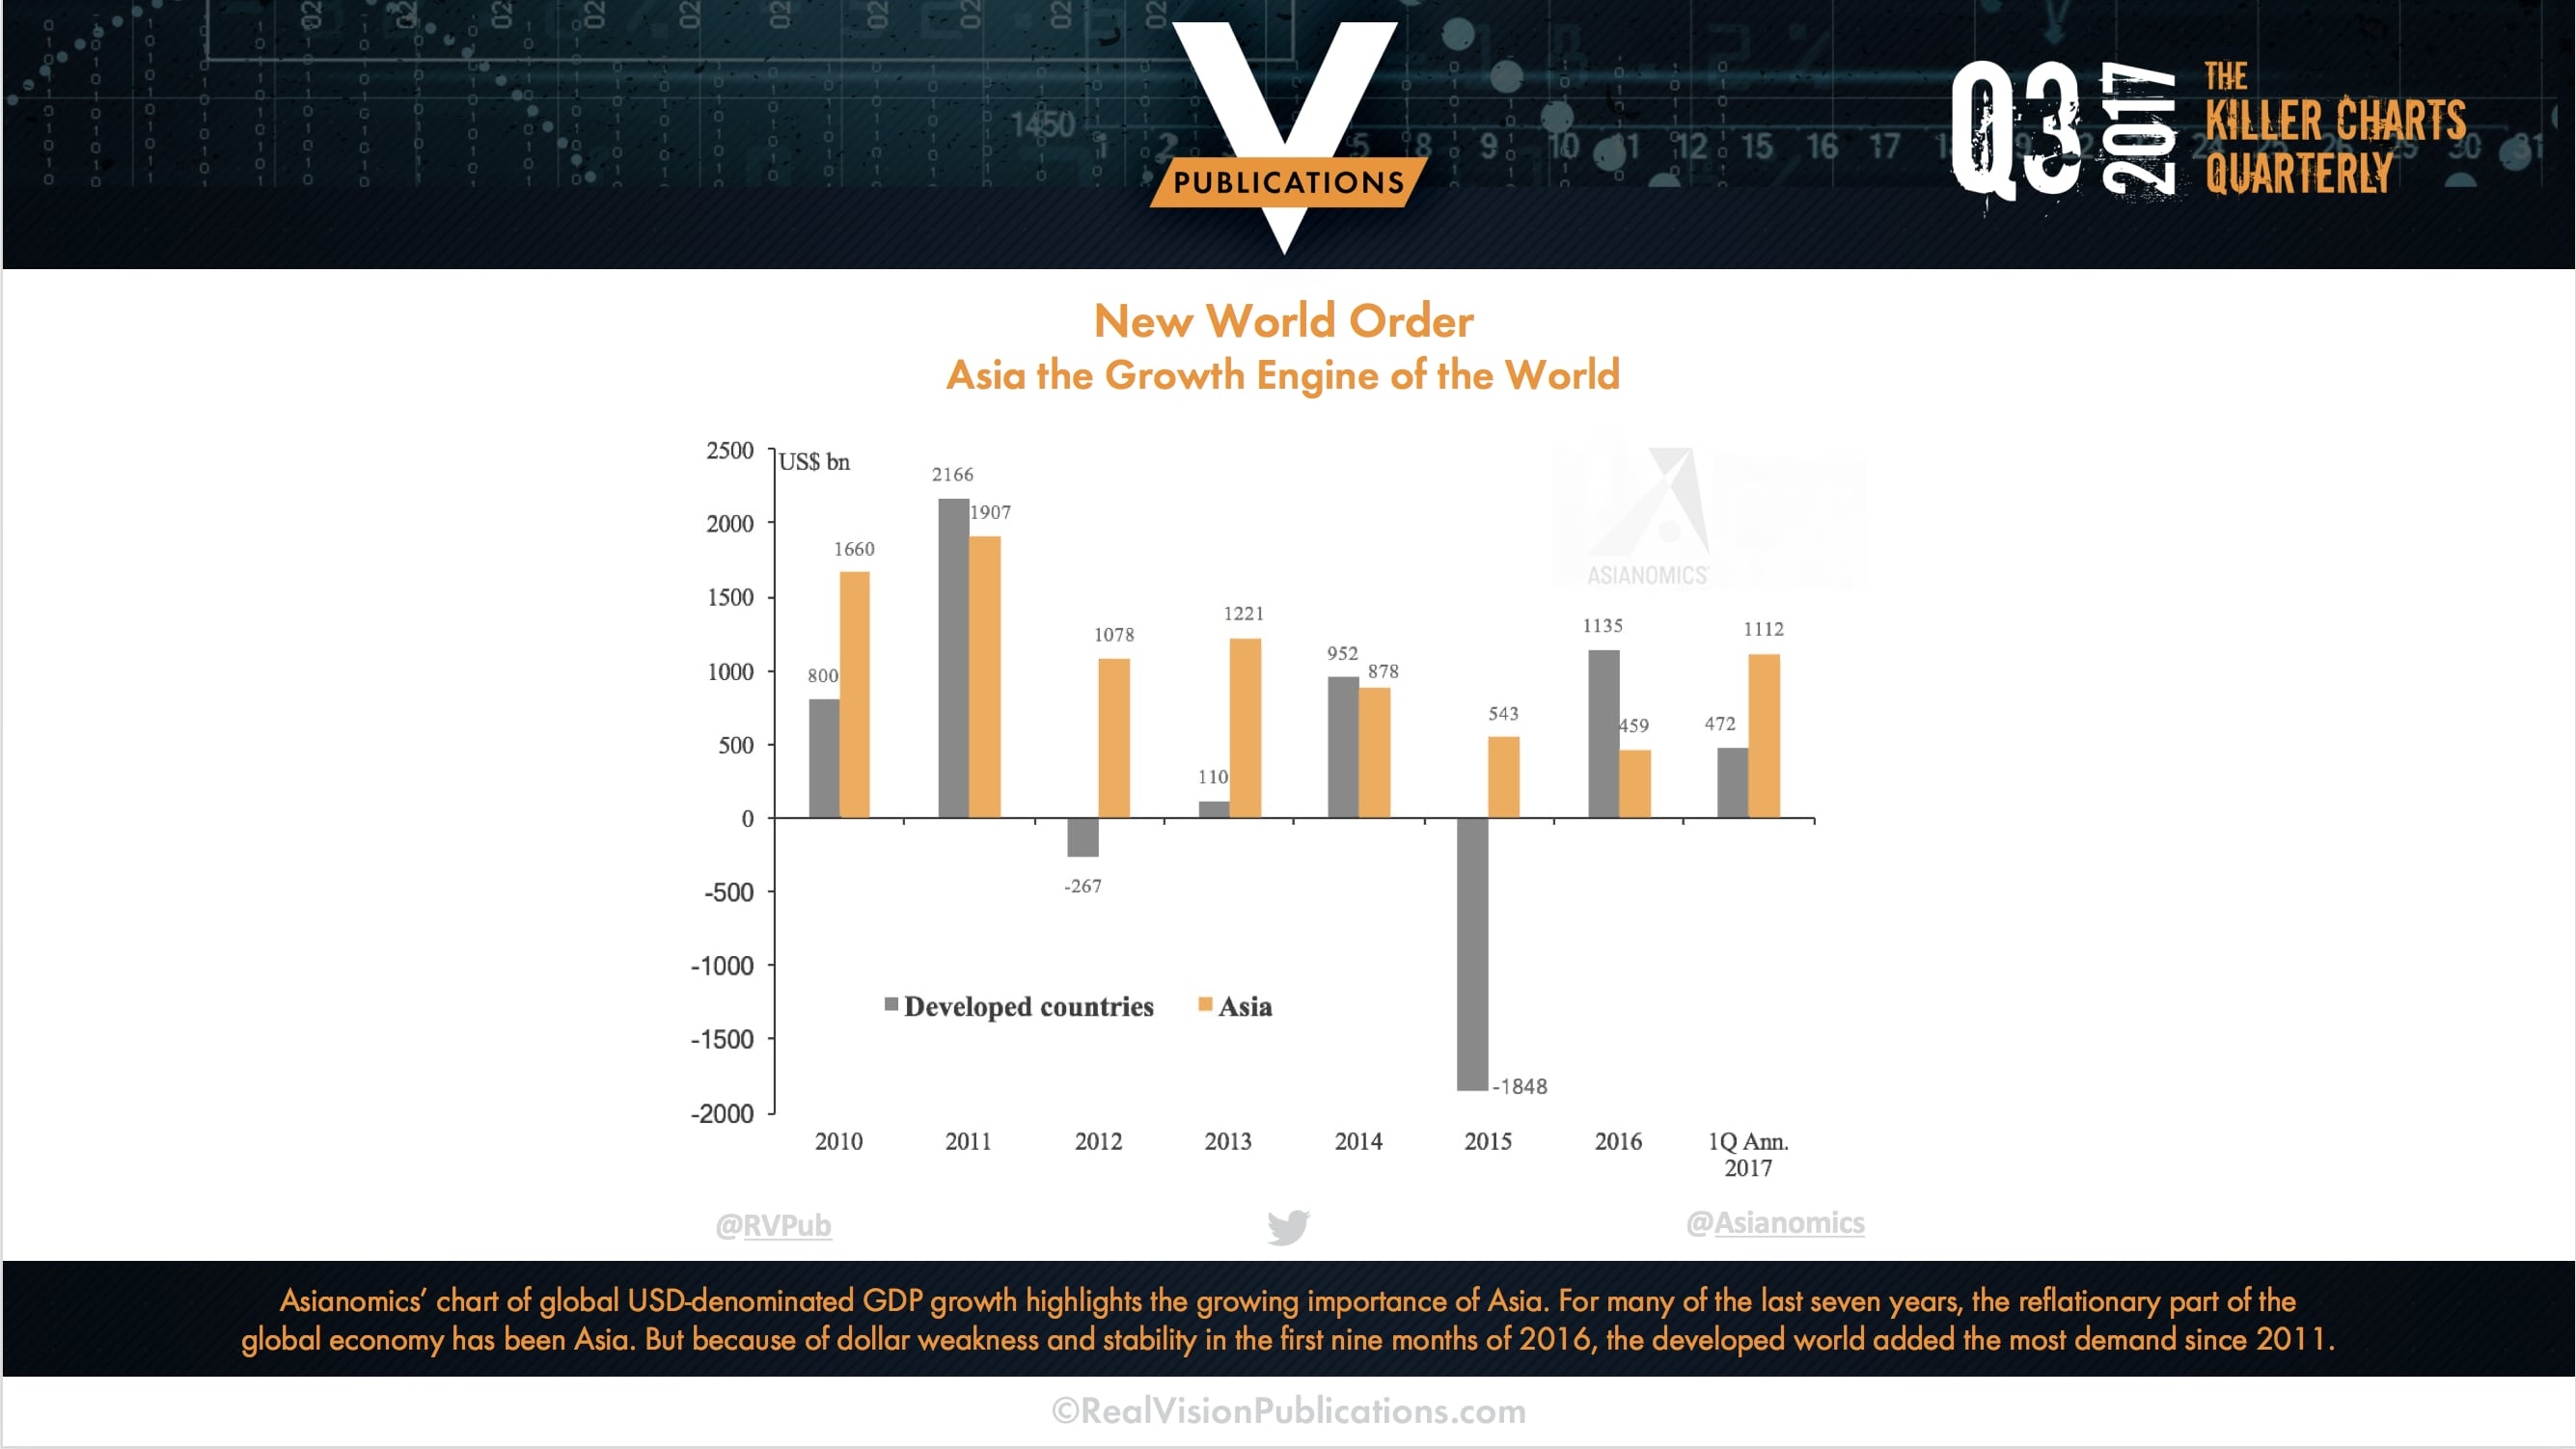 Asianomics - Killer Charts from Real Vision Publications